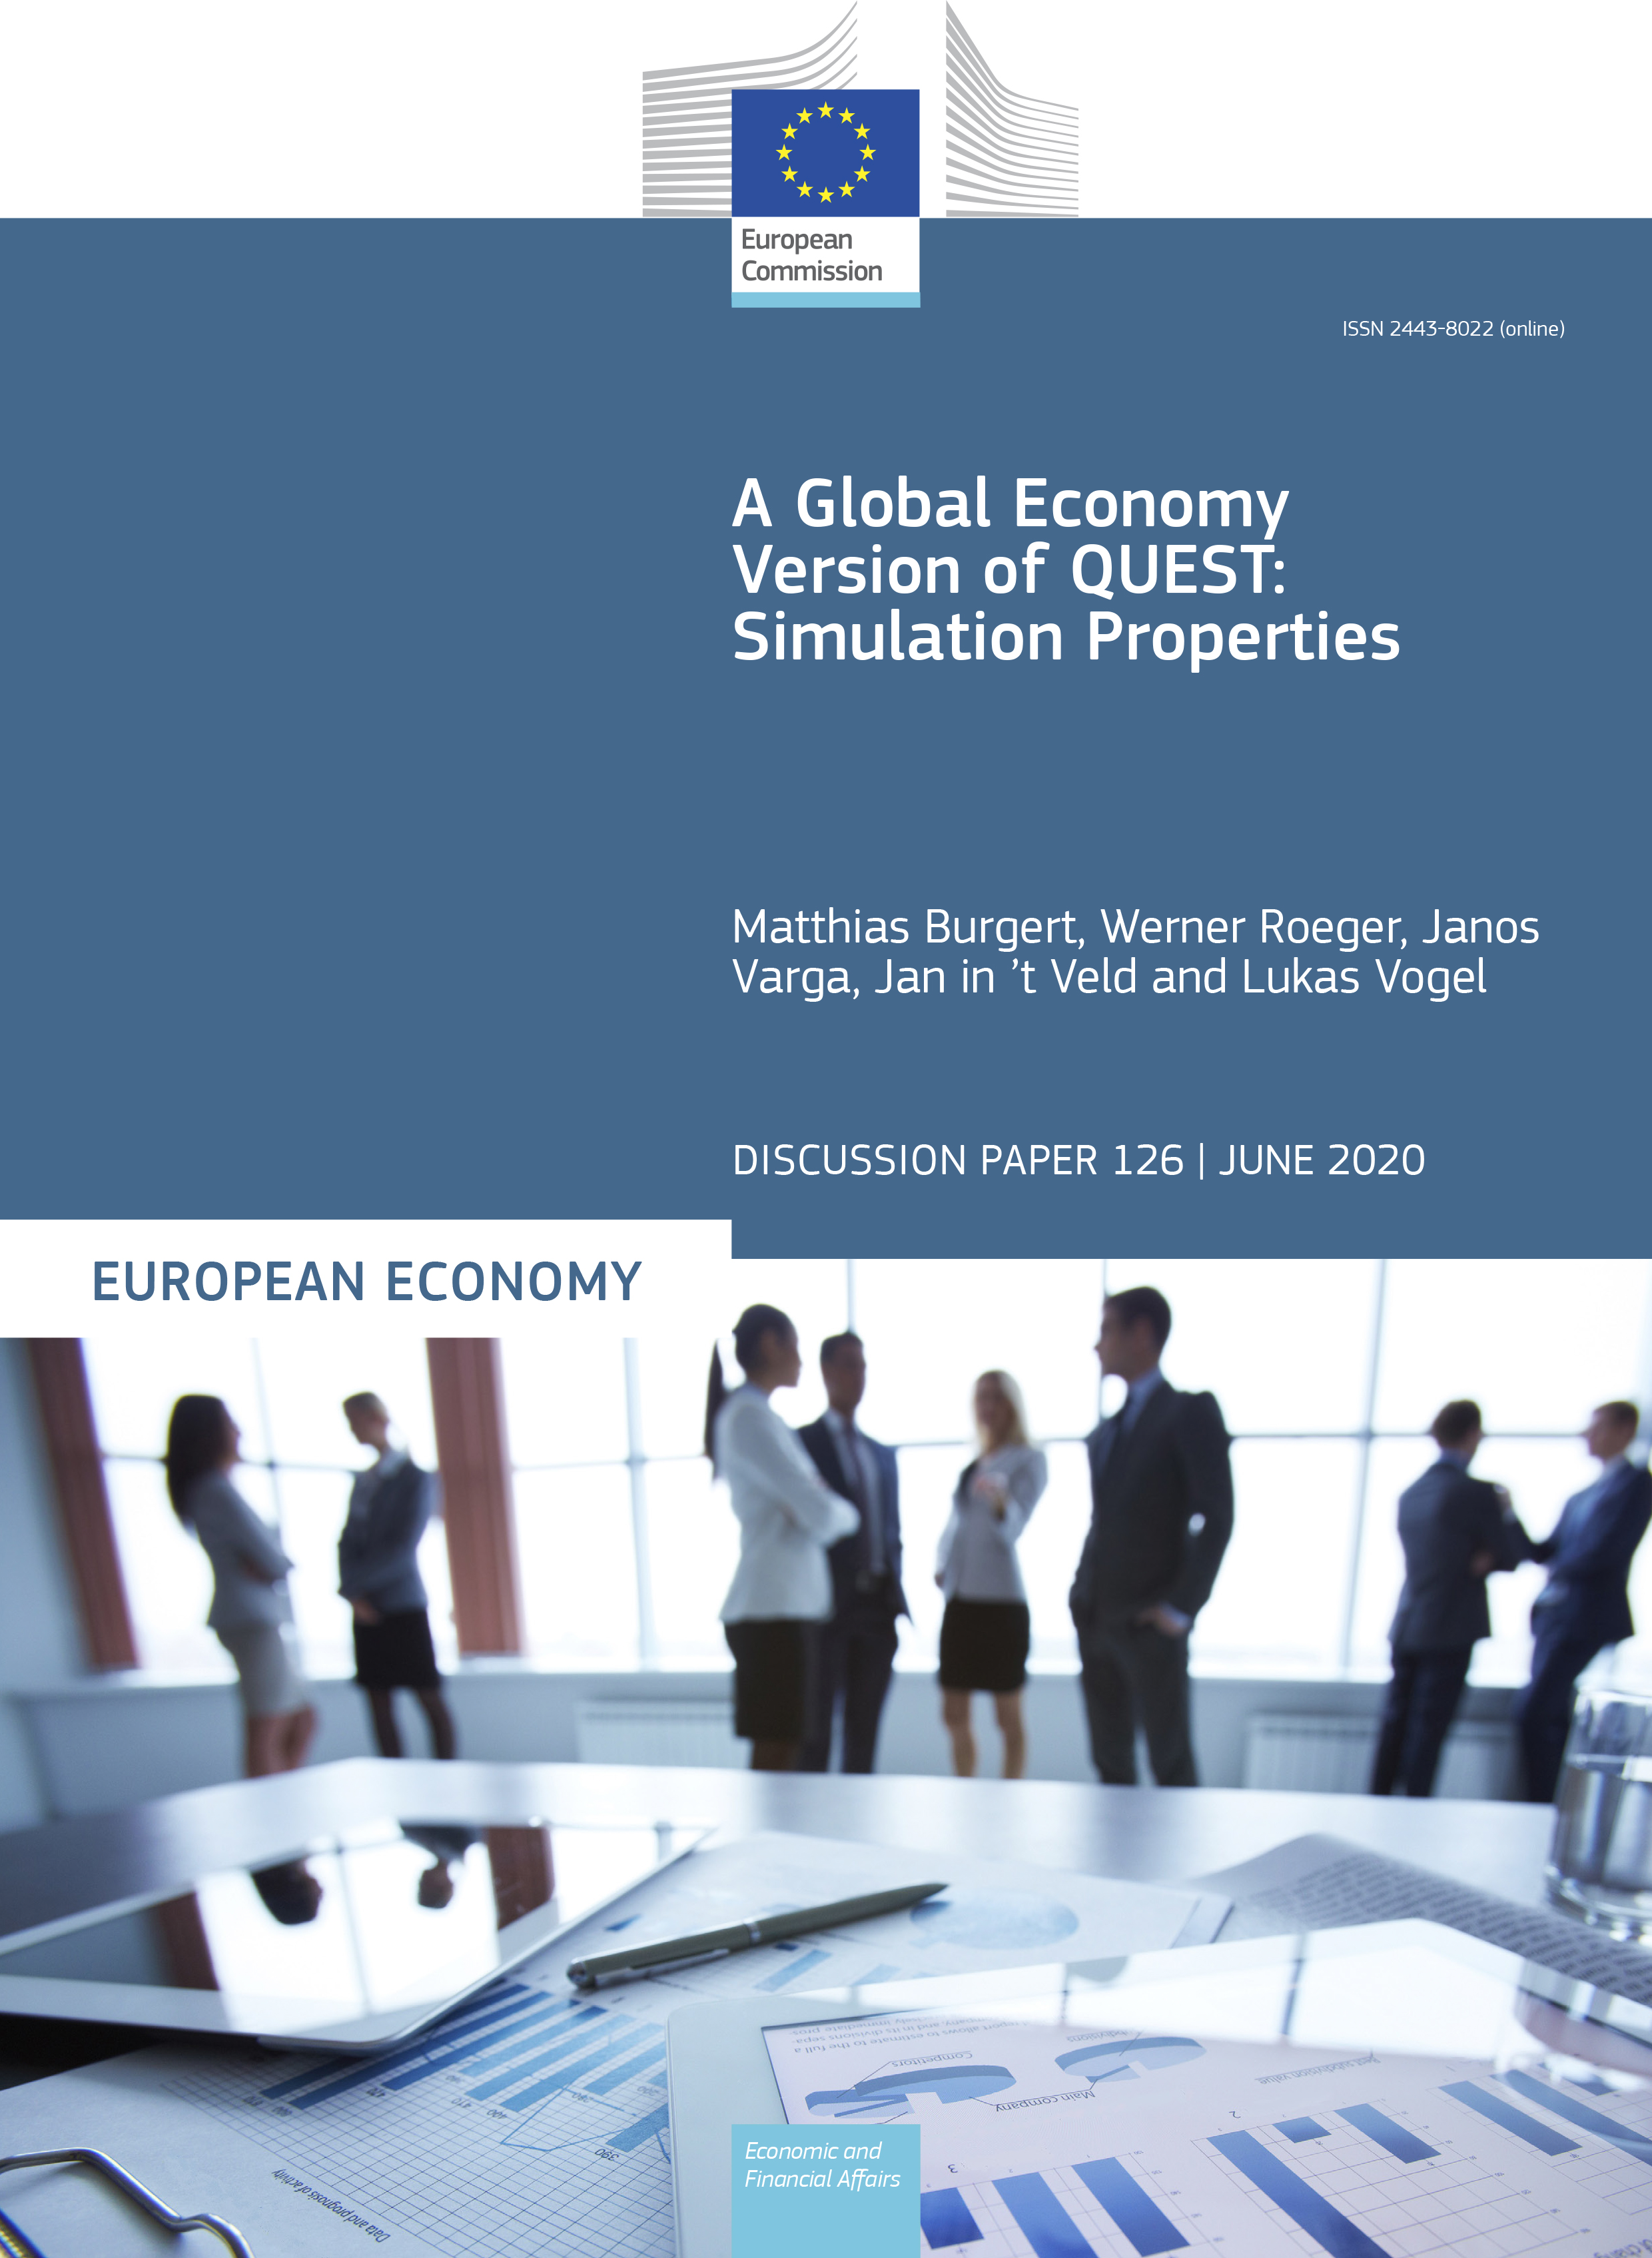 A Global Economy Version of QUEST: Simulation Properties